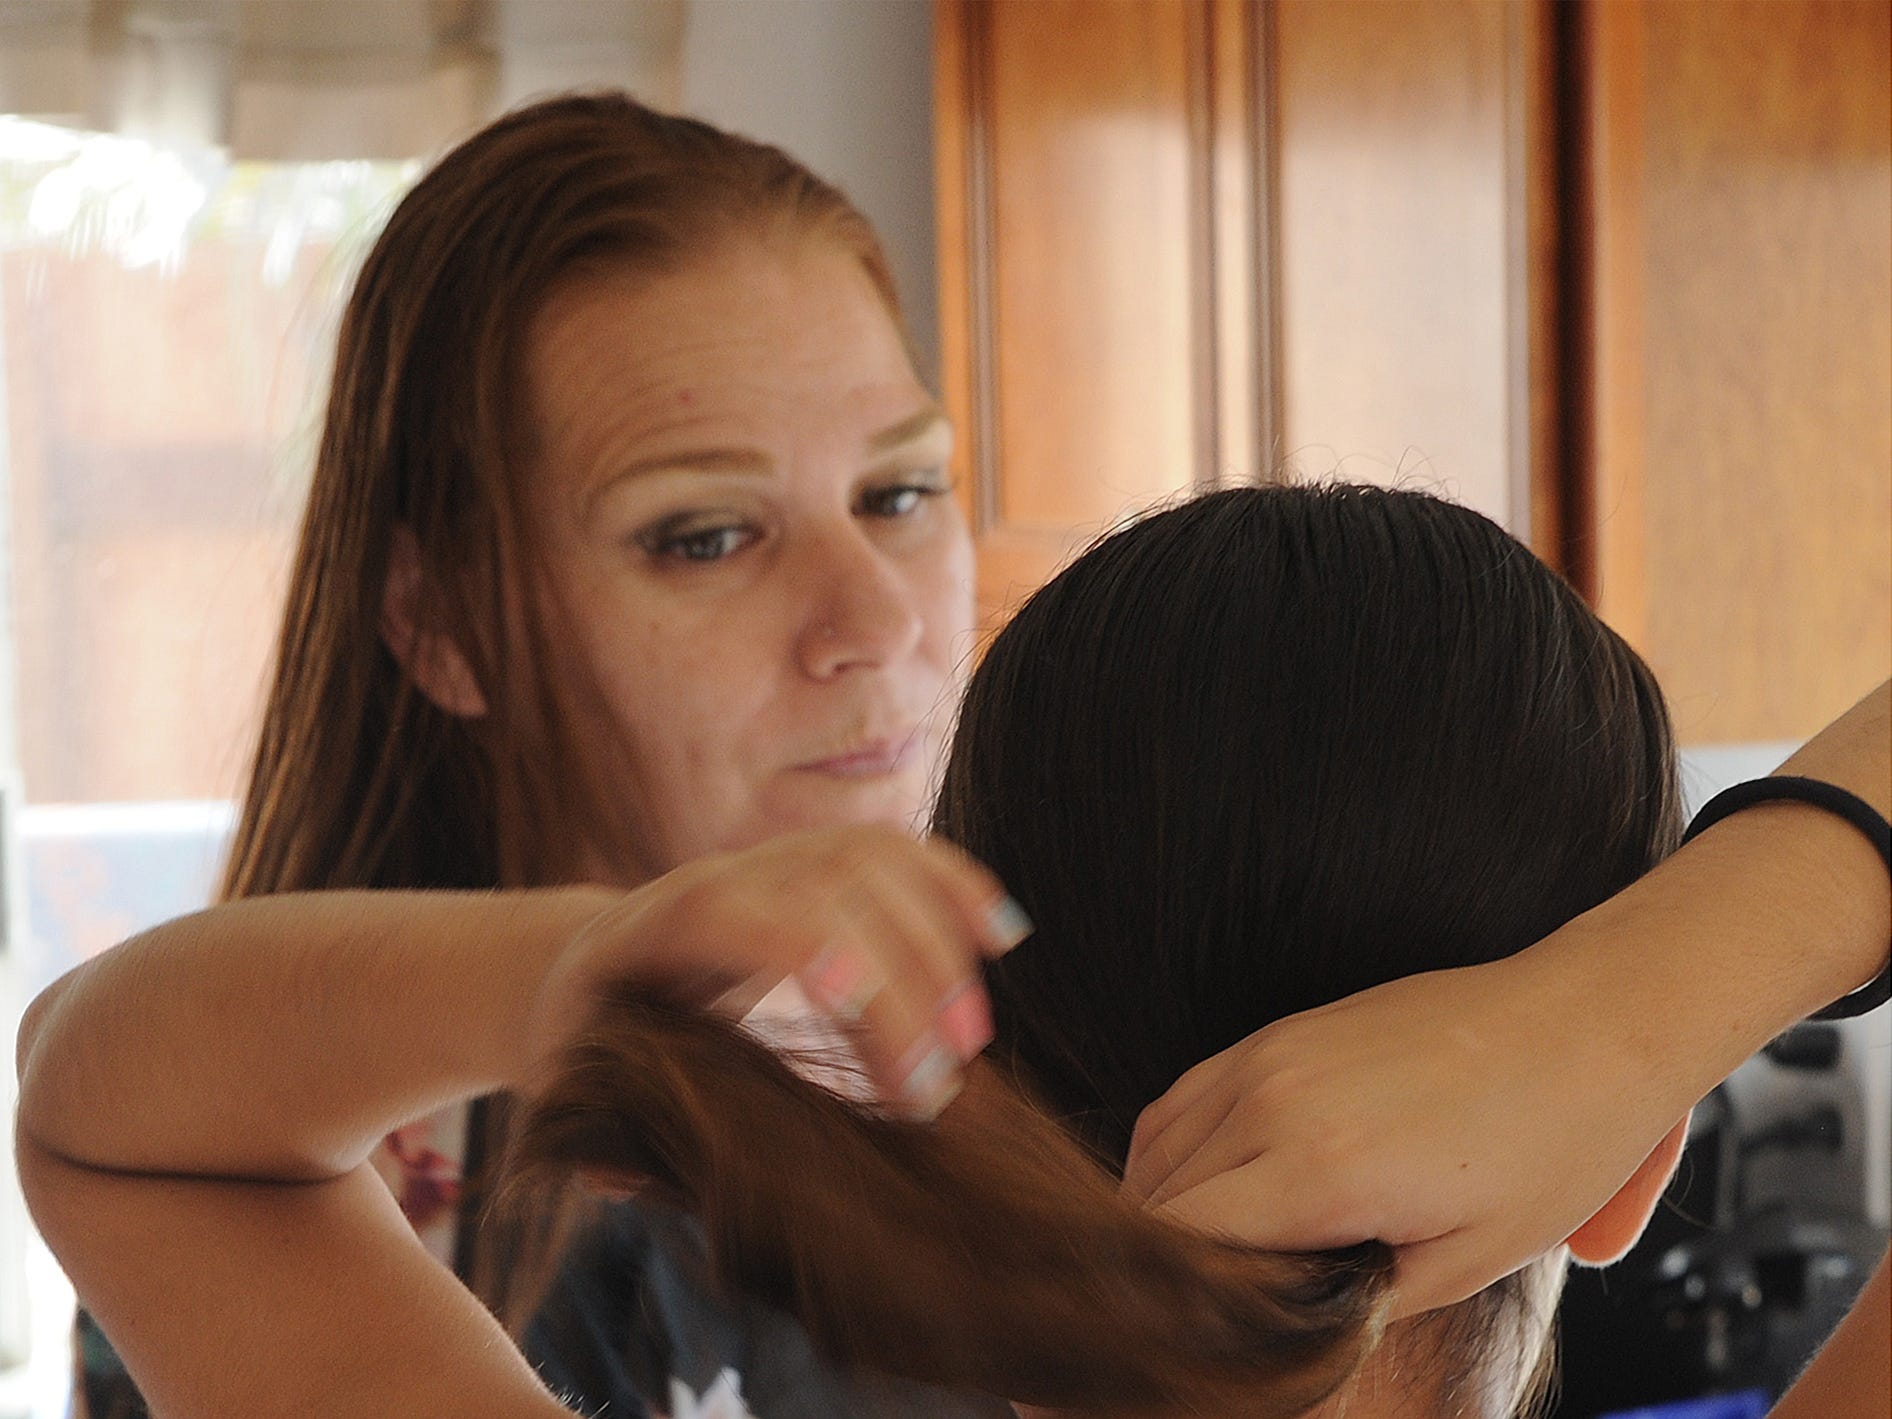 Sabrina Boyer talks to her foster daughter Angie as they prepare a cake in the Oxnard home they share. Boyer and Angie are part of an intensive services foster care program.